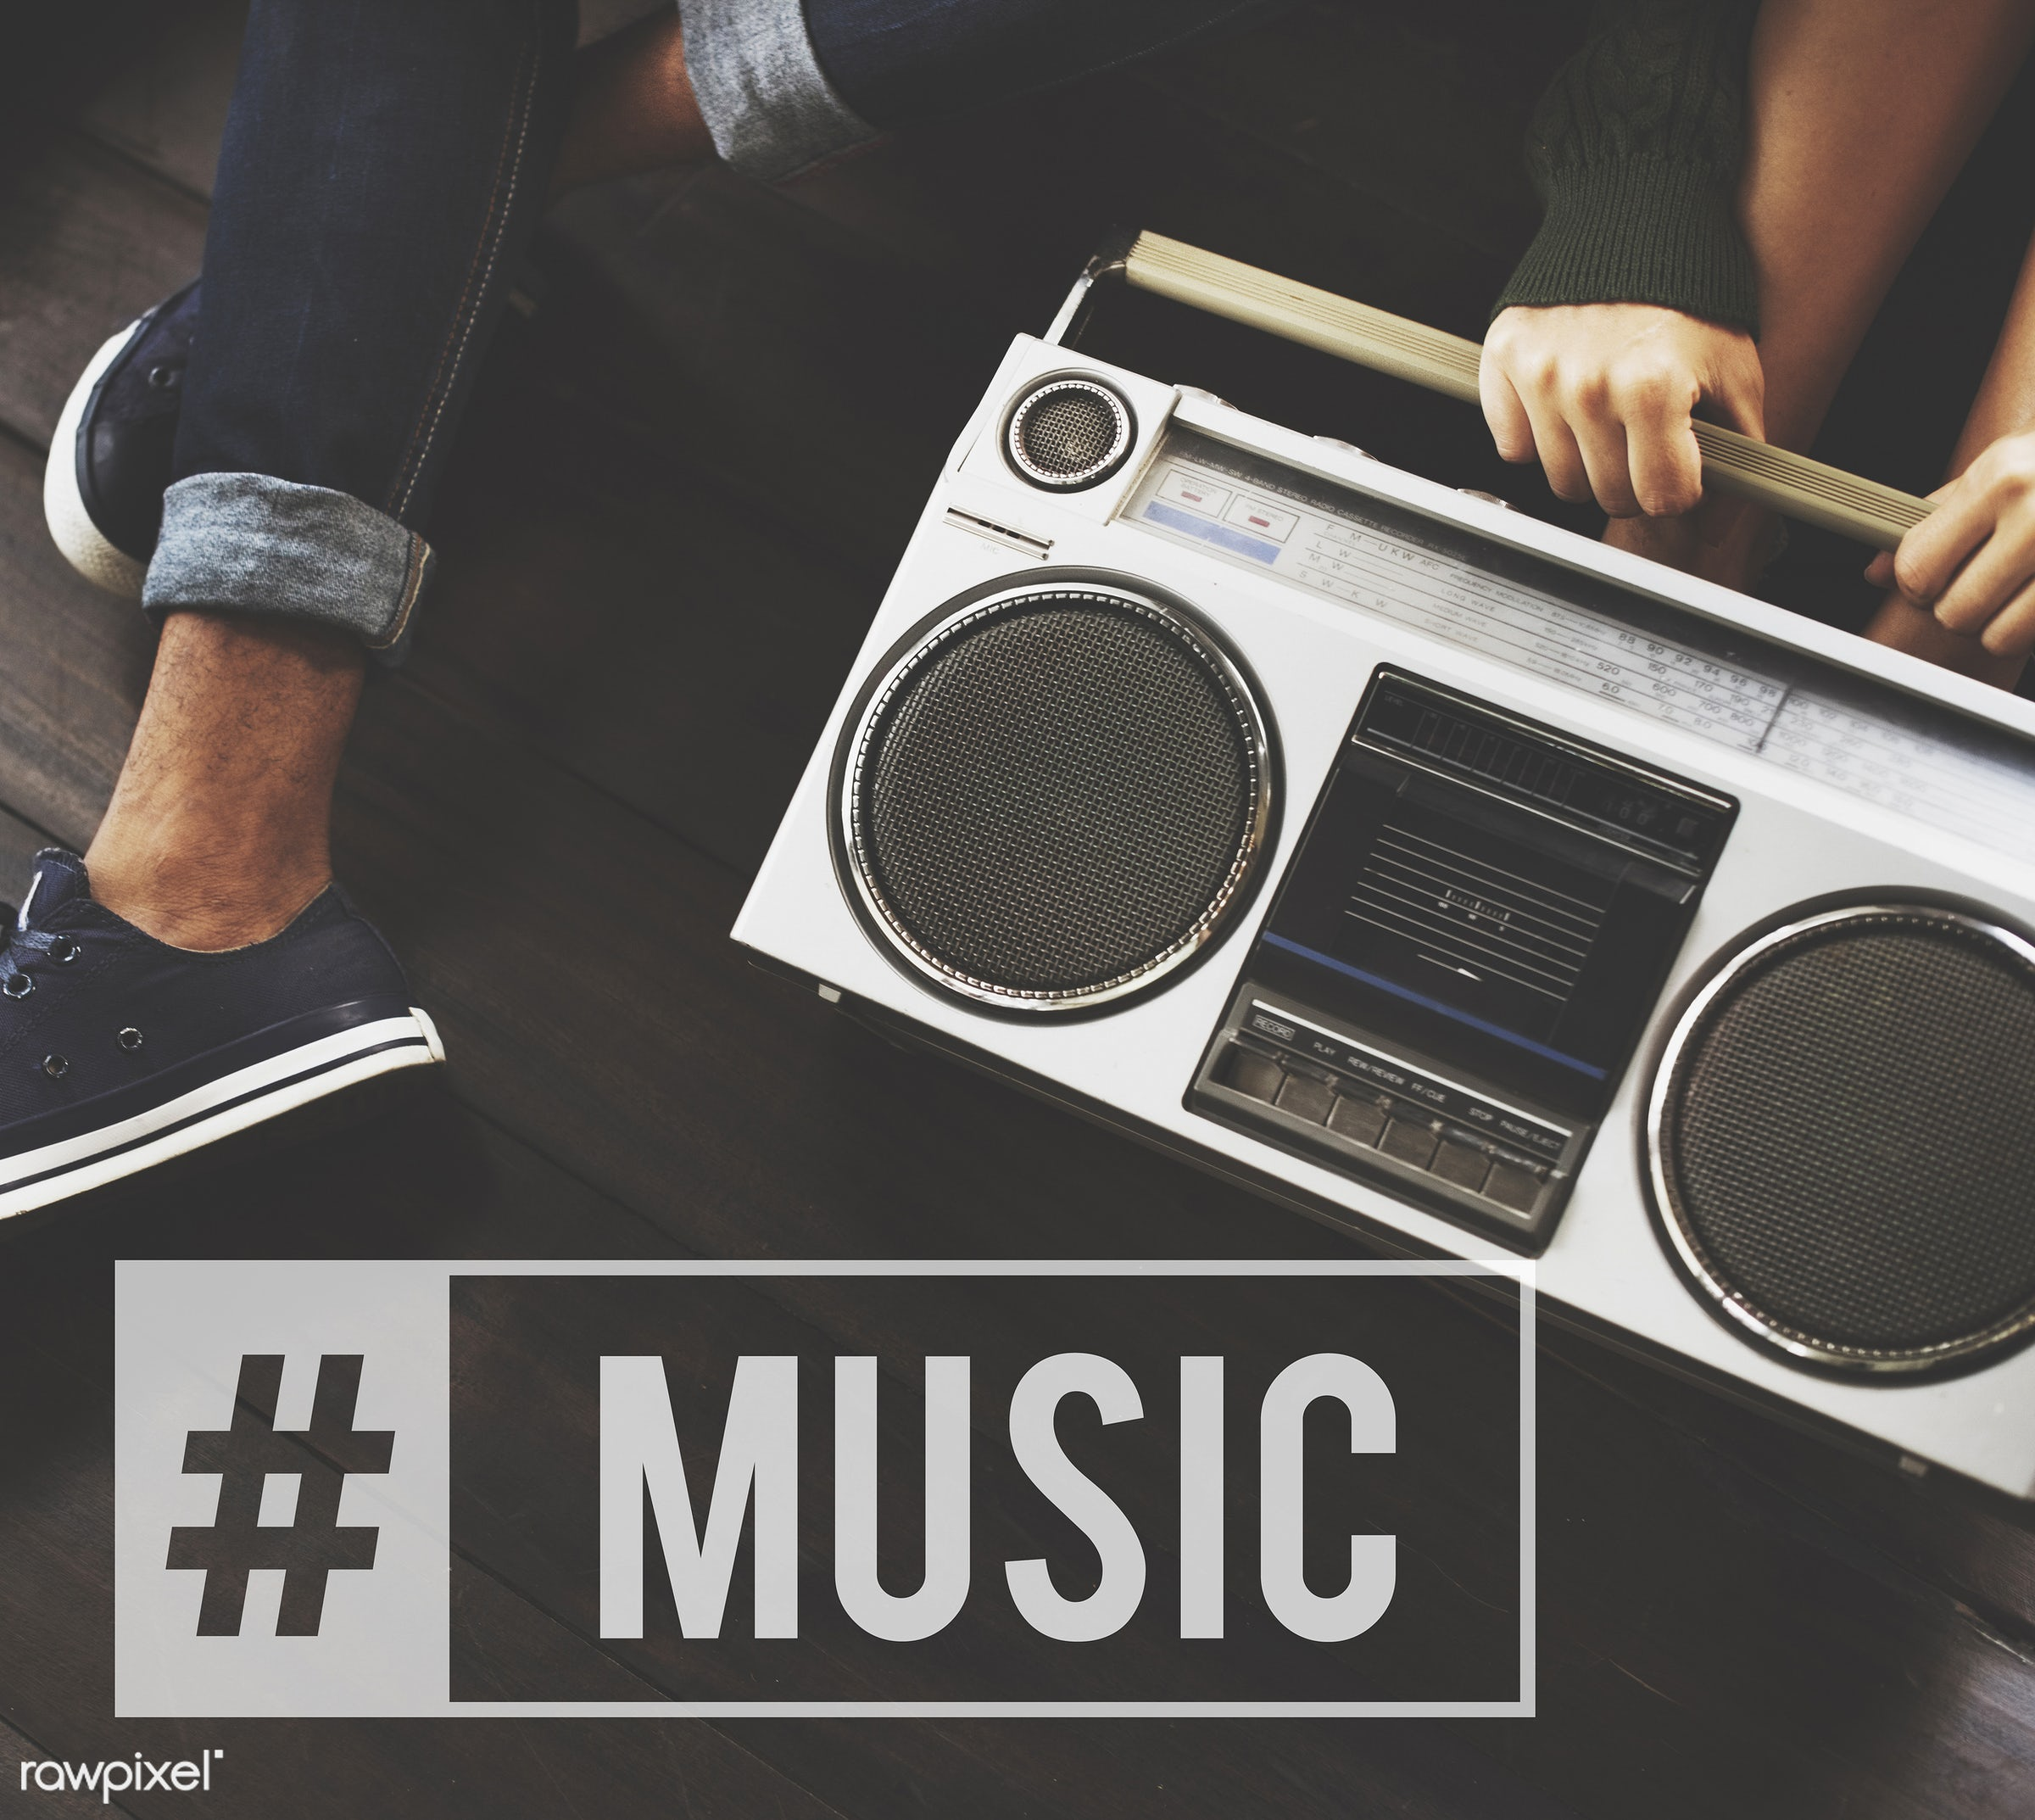 Music is life - affirmative, audio, chilling, determined, emotion, enjoyment, entertain, entertainment, enthusiastic,...